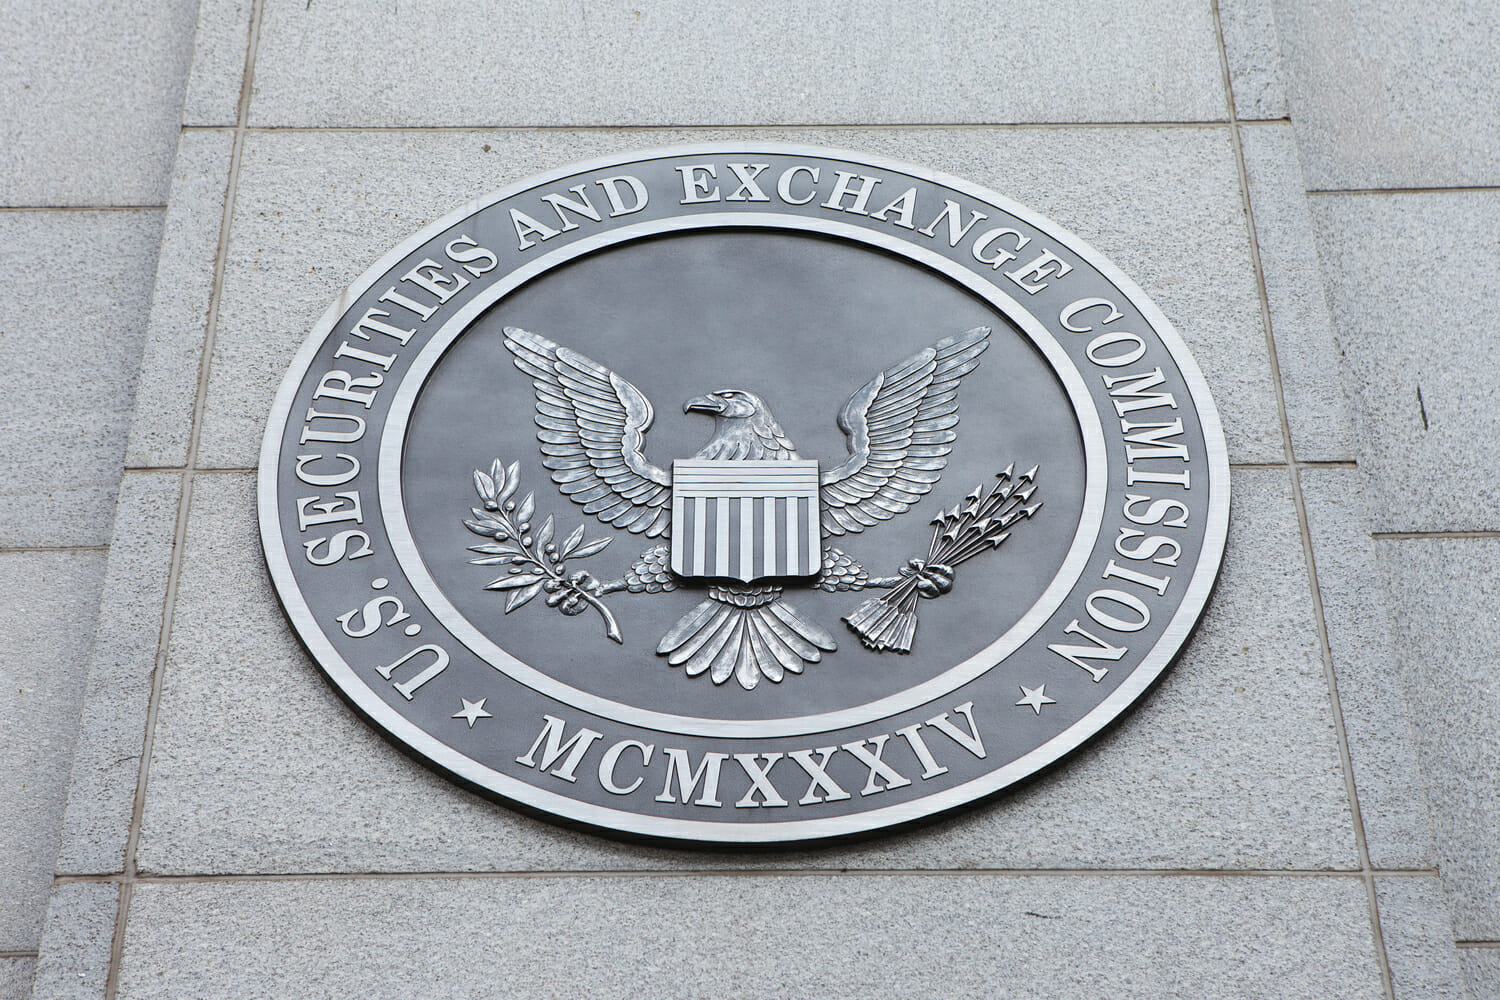 SEC Charges Fantasy Market Founder With Orchestrating a Fraudulent ICO